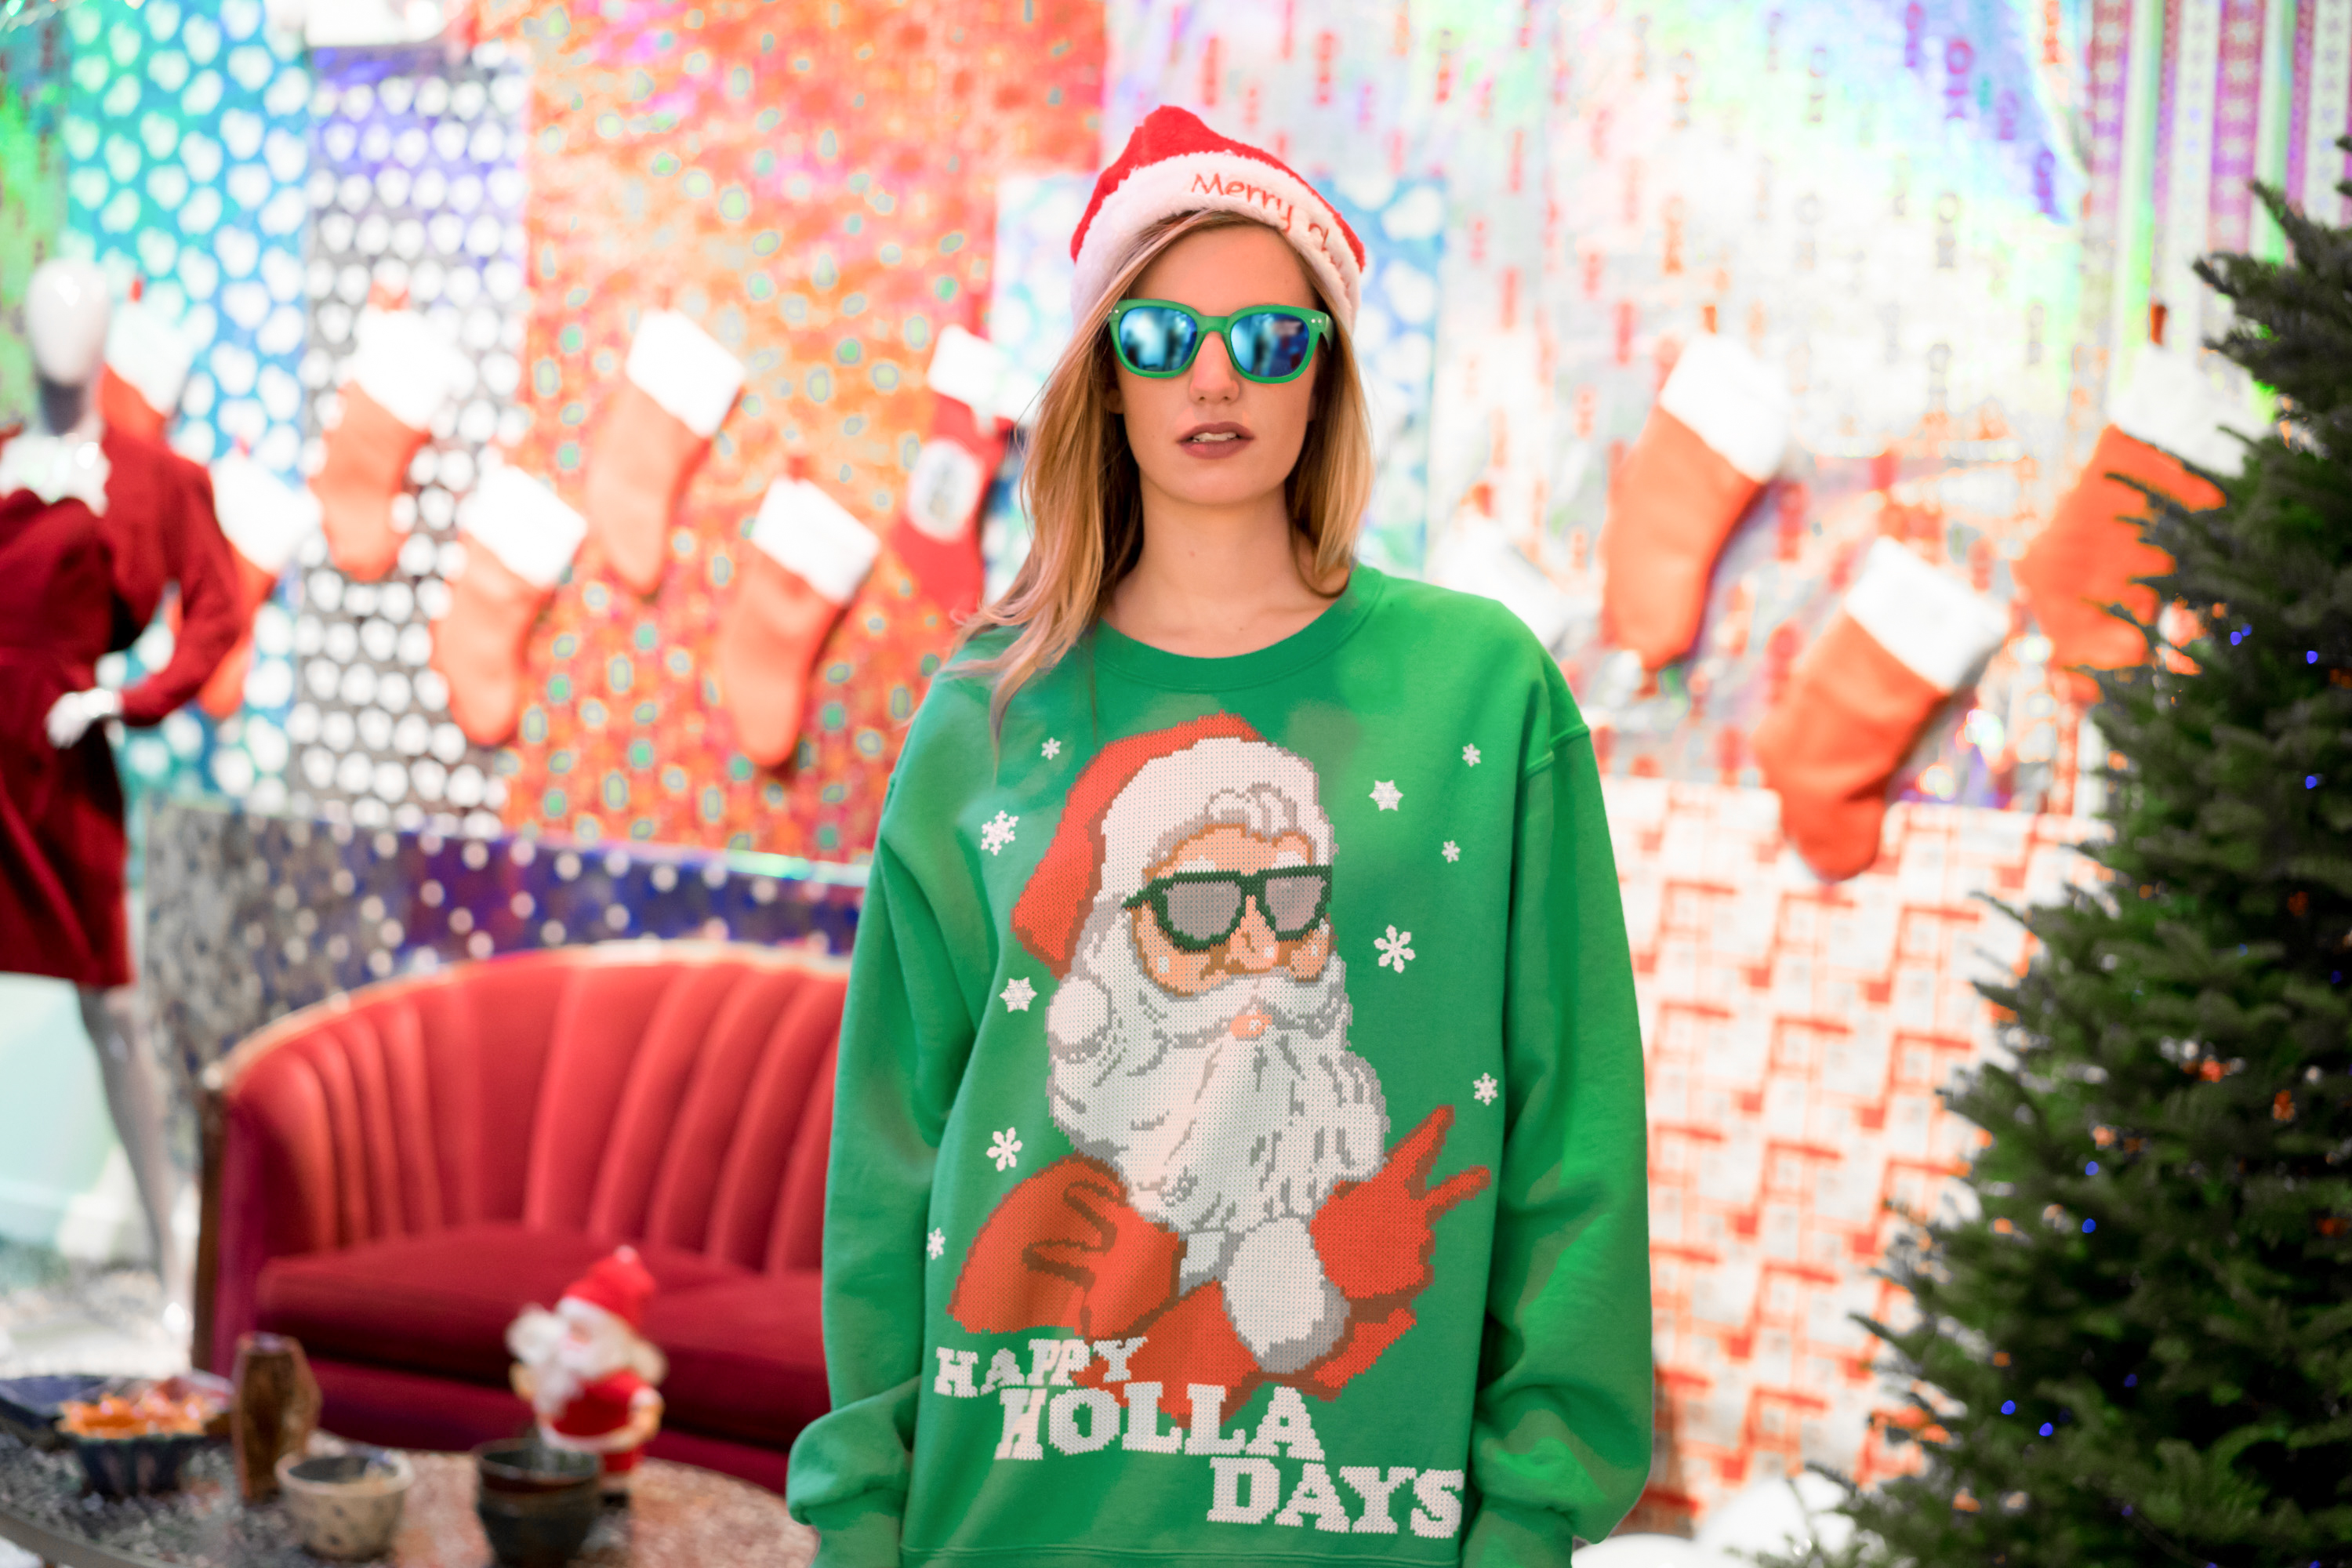 Ugly Sweater, 303 Fashion, 303 Magazine, Denver Fashion, Holiday Fashion, Ugly Sweaters, Holiday Parties, Shop Local, Buffalo Exchange, Denver Style, Abby Hackmann, Kiddest Metaferia, Sweater Season, Winter Wear, Style Guide